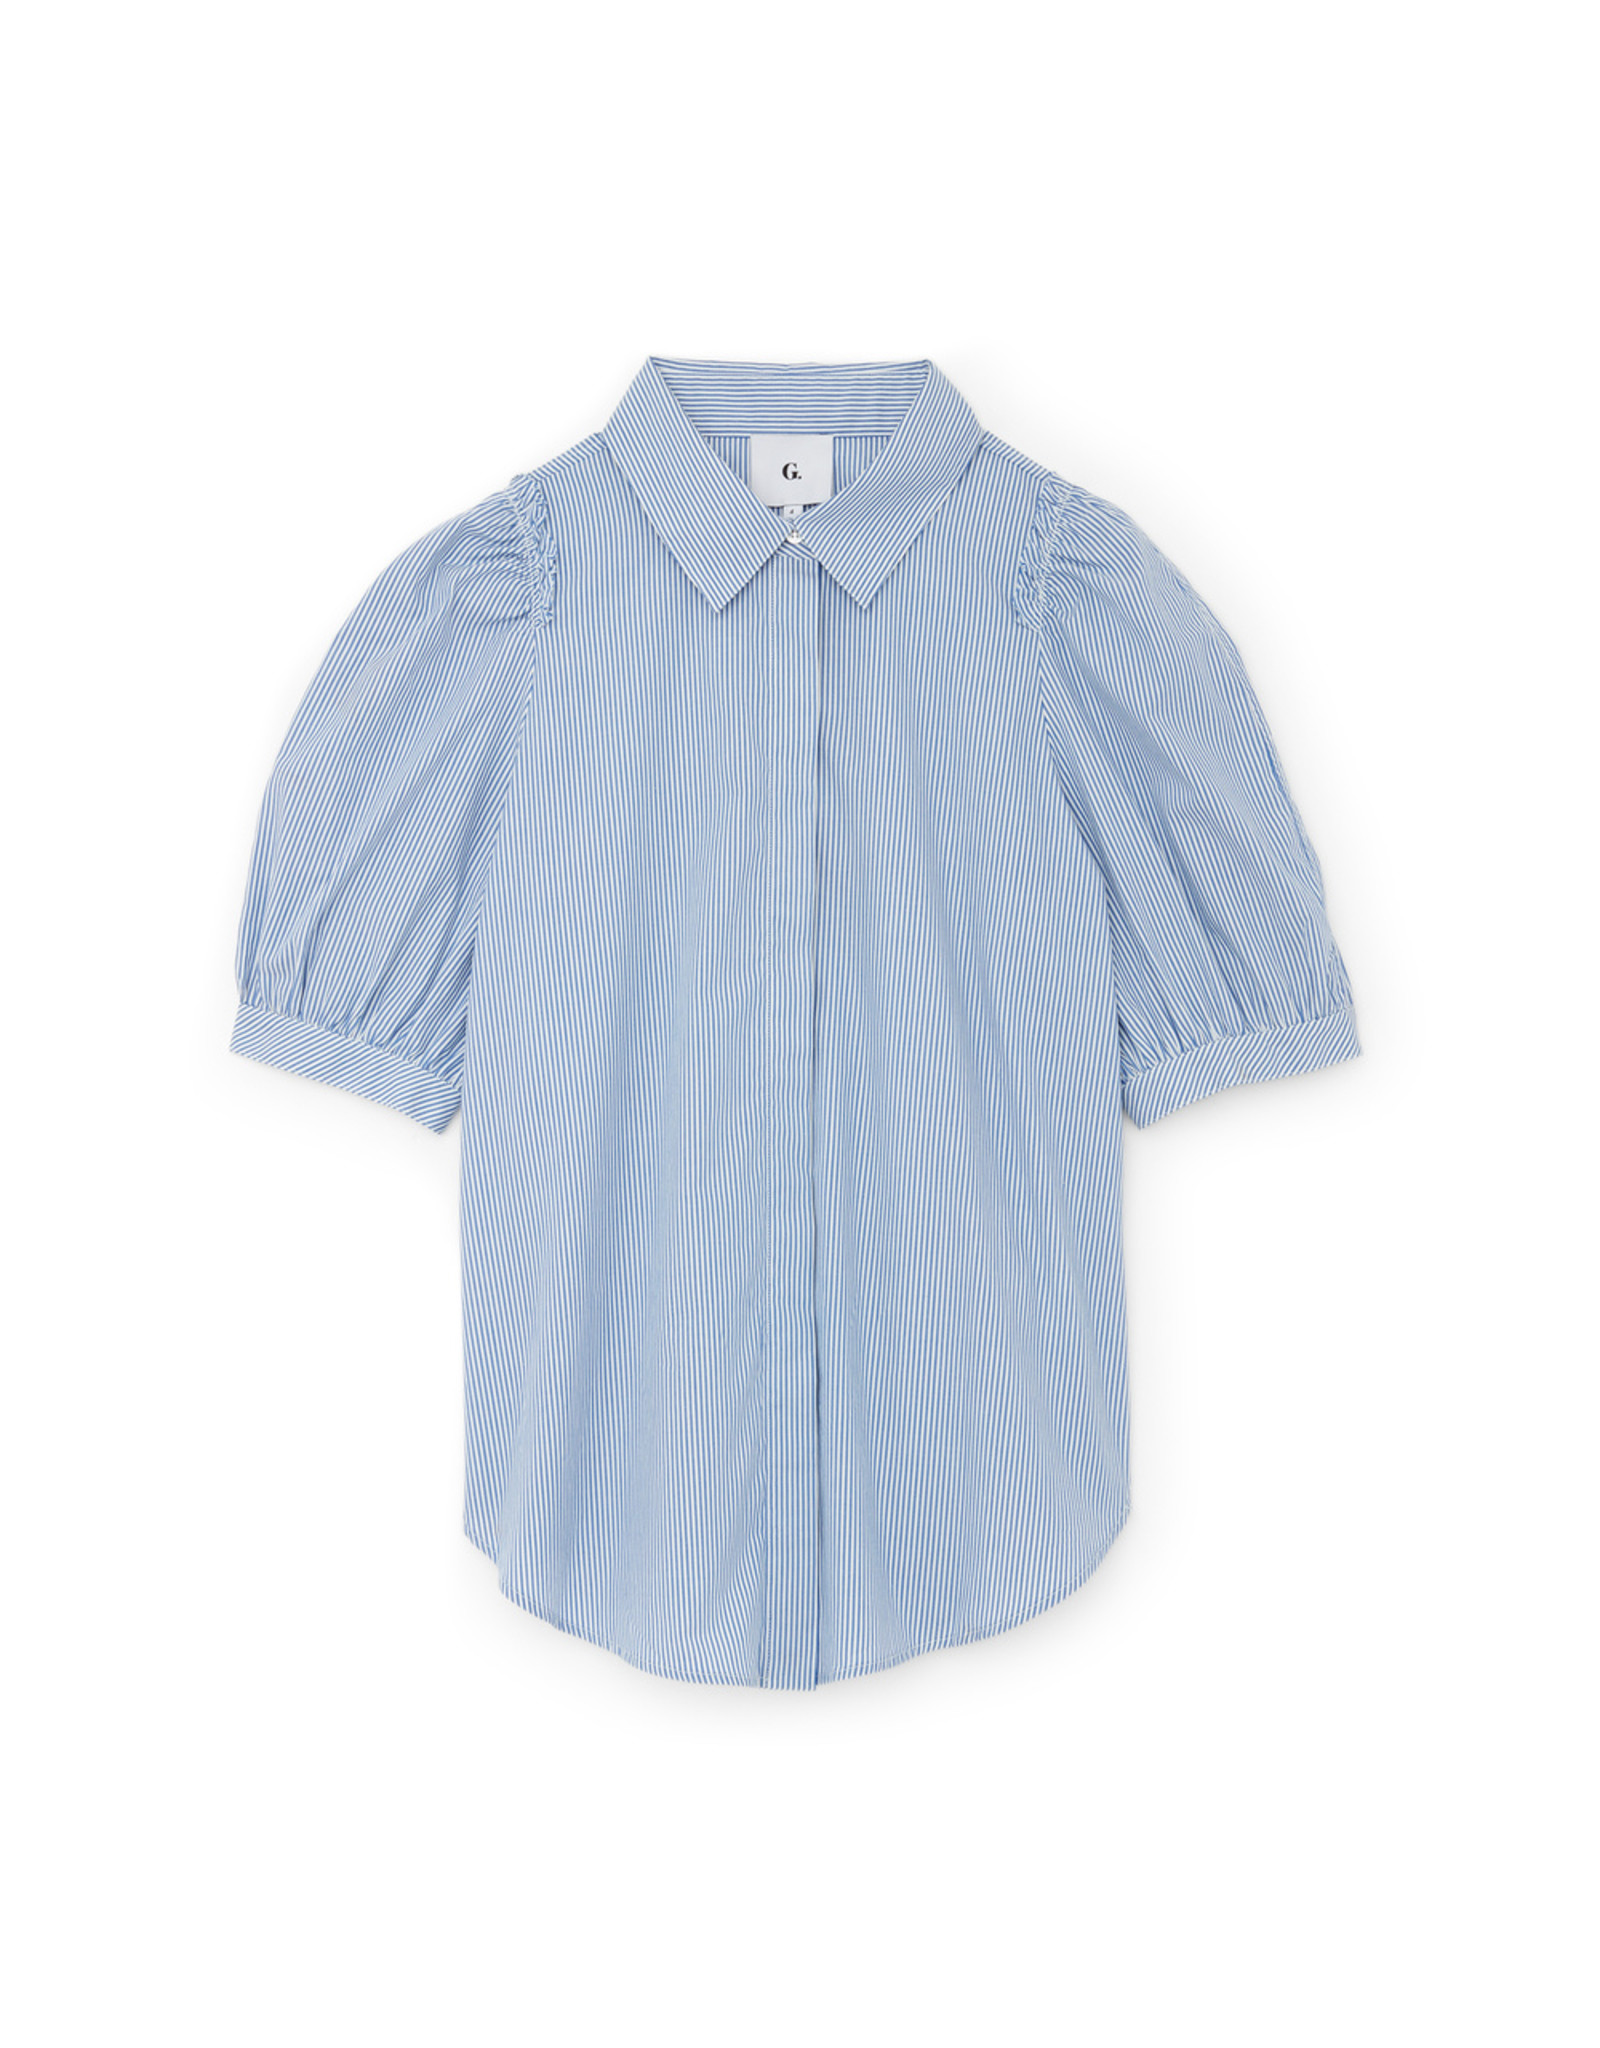 G. Label G. Label Nicole Puff-Sleeve Button-Down with Collar (Size: 12, Color: Blue/White Stripe)